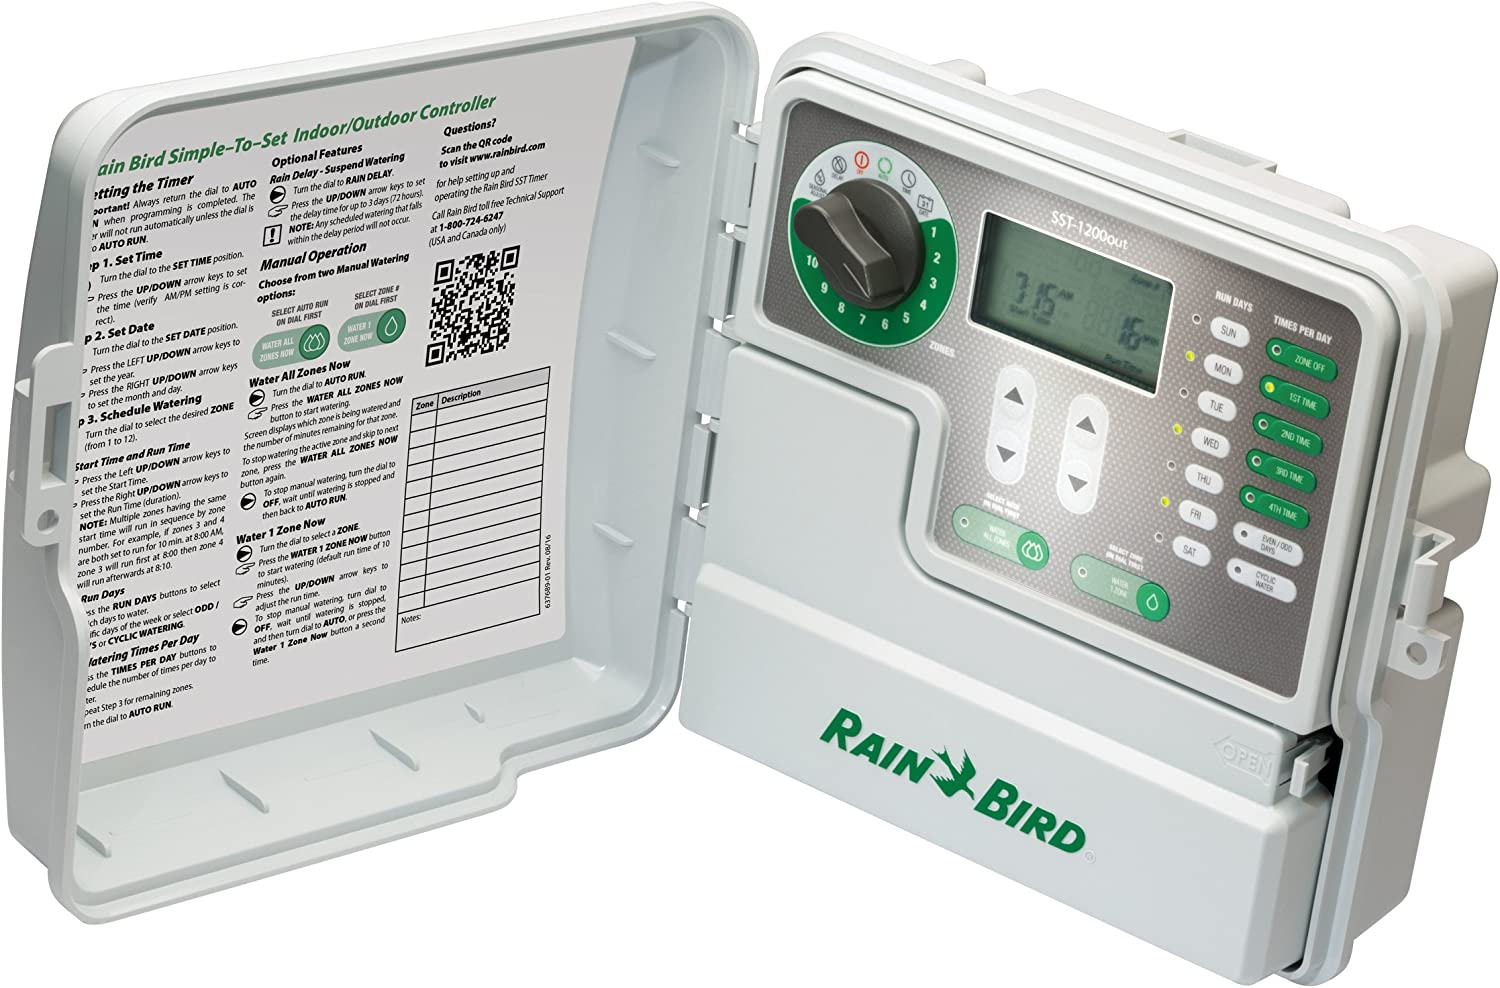 Rain Bird SST900IN Simple-to-Set Indoor Sprinkler//Irrigation System Timer//Controller - 1 This New//Improved Model Replaces SST900I 9-Zone//Station